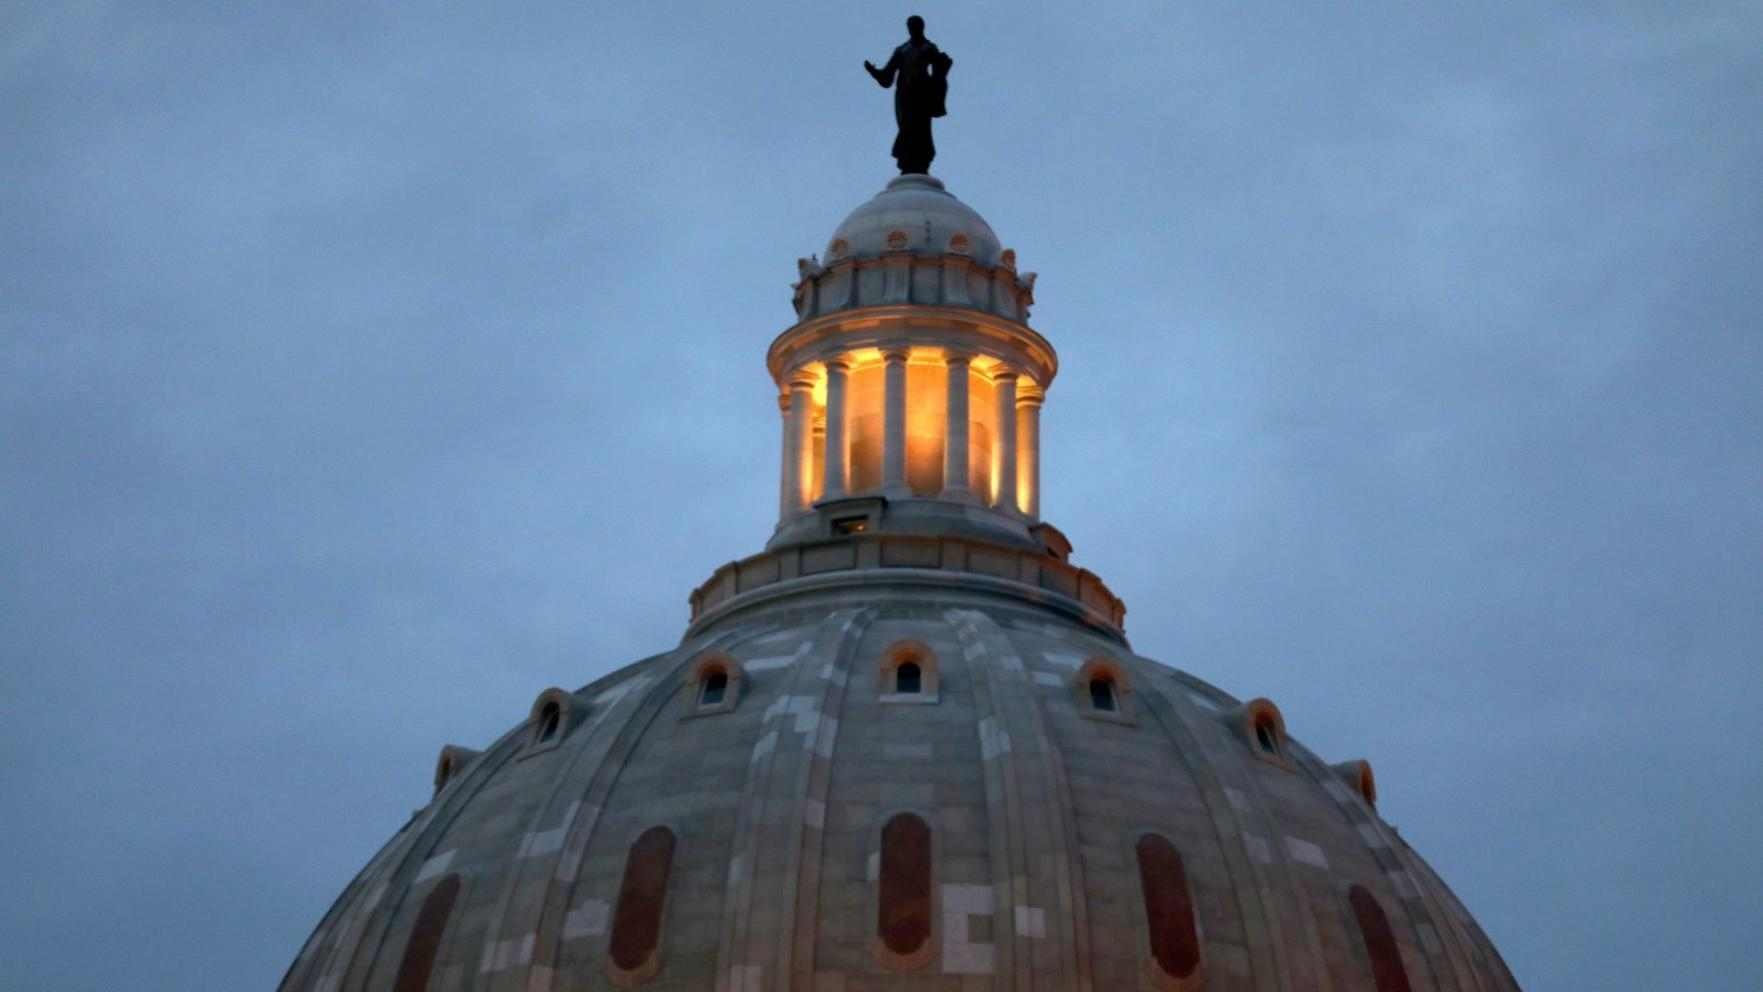 With exterior renovation complete, Missouri Capitol to provide backdrop for inaugural